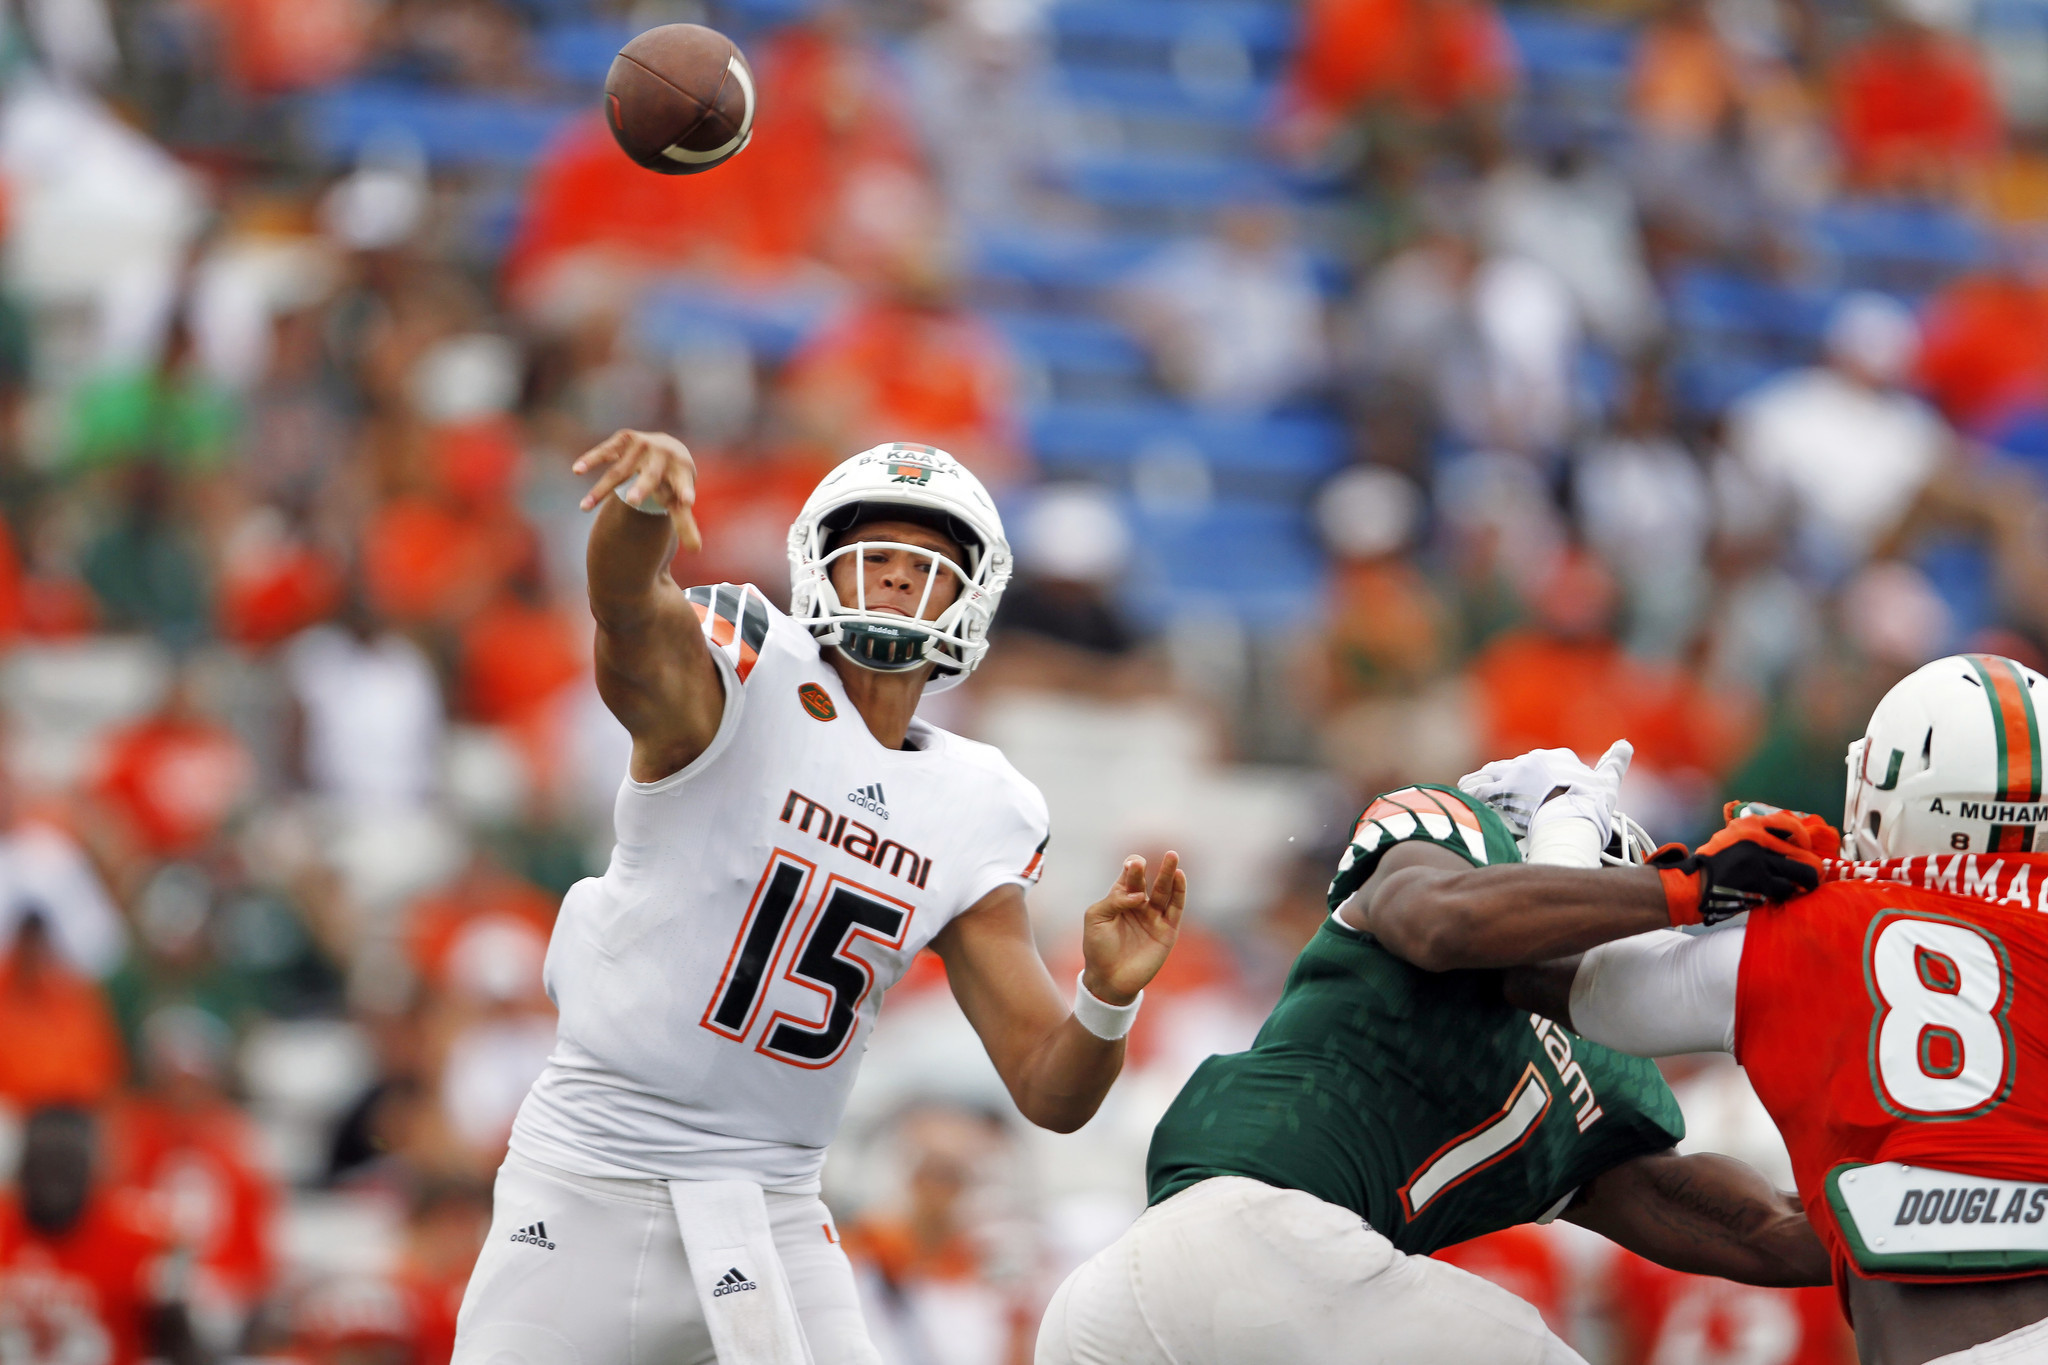 Sfl-canes-put-one-scrimmage-behind-them-look-ahead-to-another-20160820